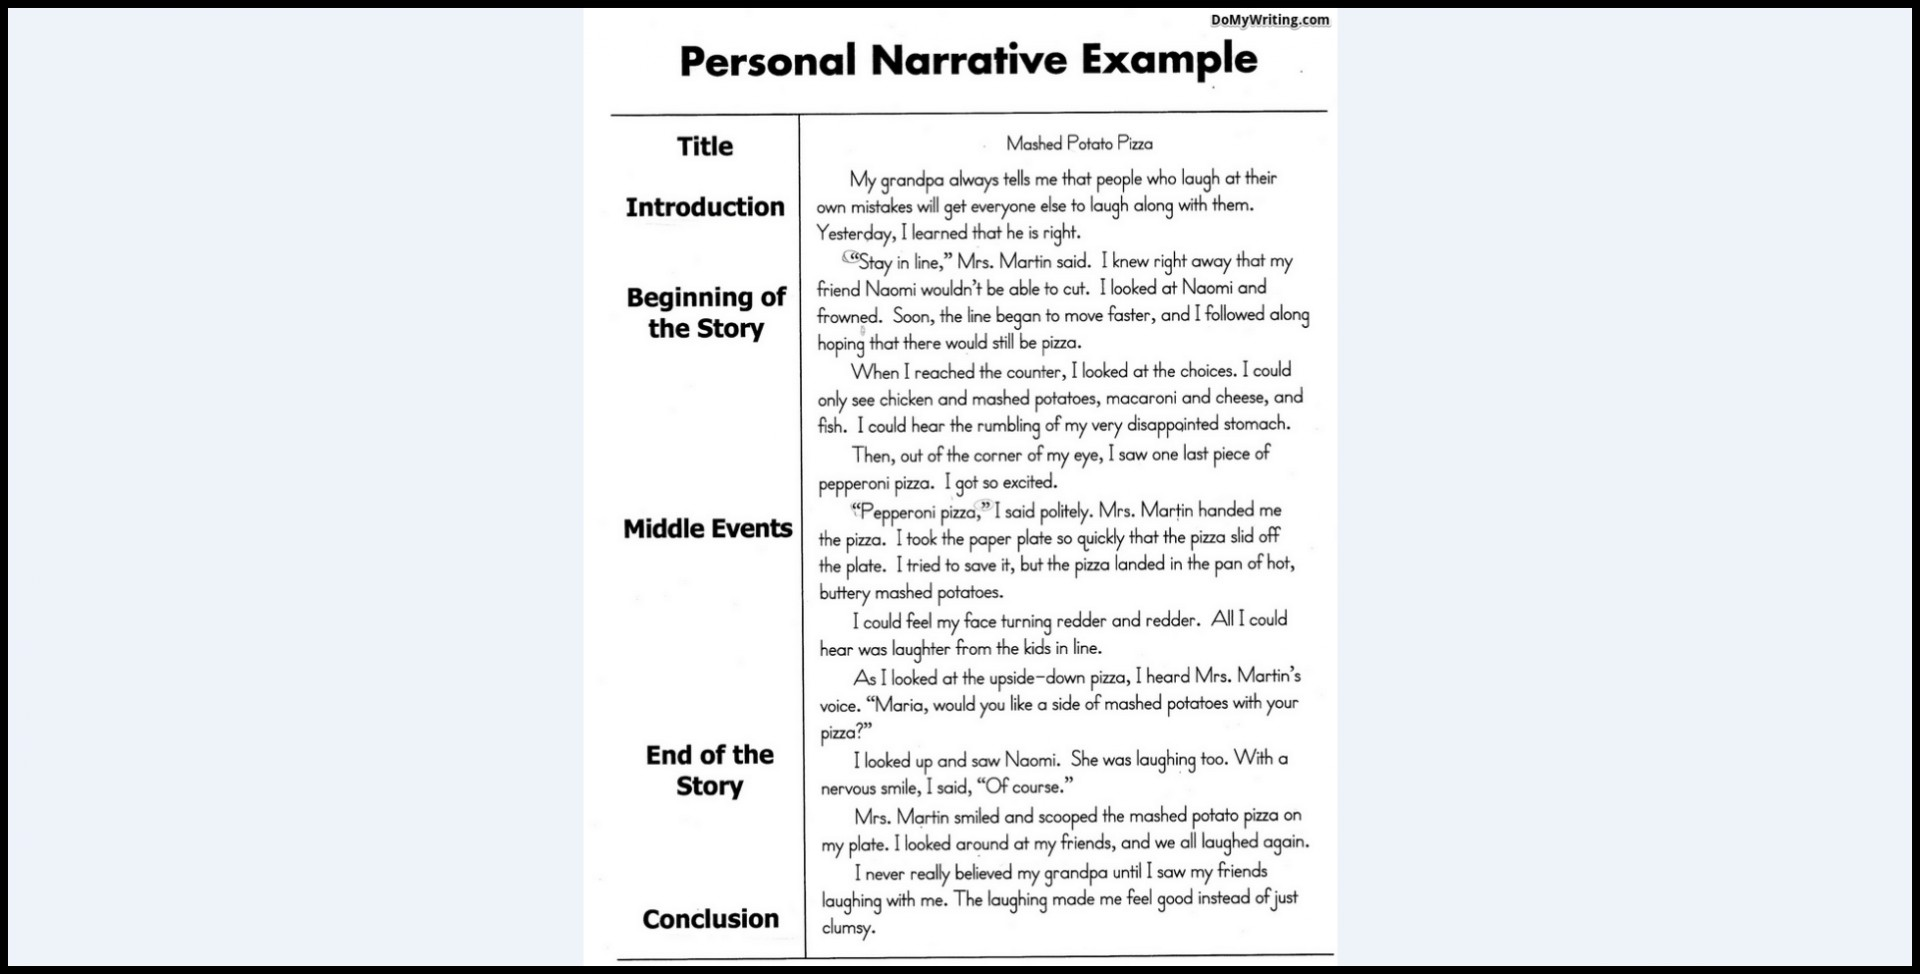 002 Narrative Essay Exceptional Format High School Graphic Organizer 4th Grade Pdf 1920